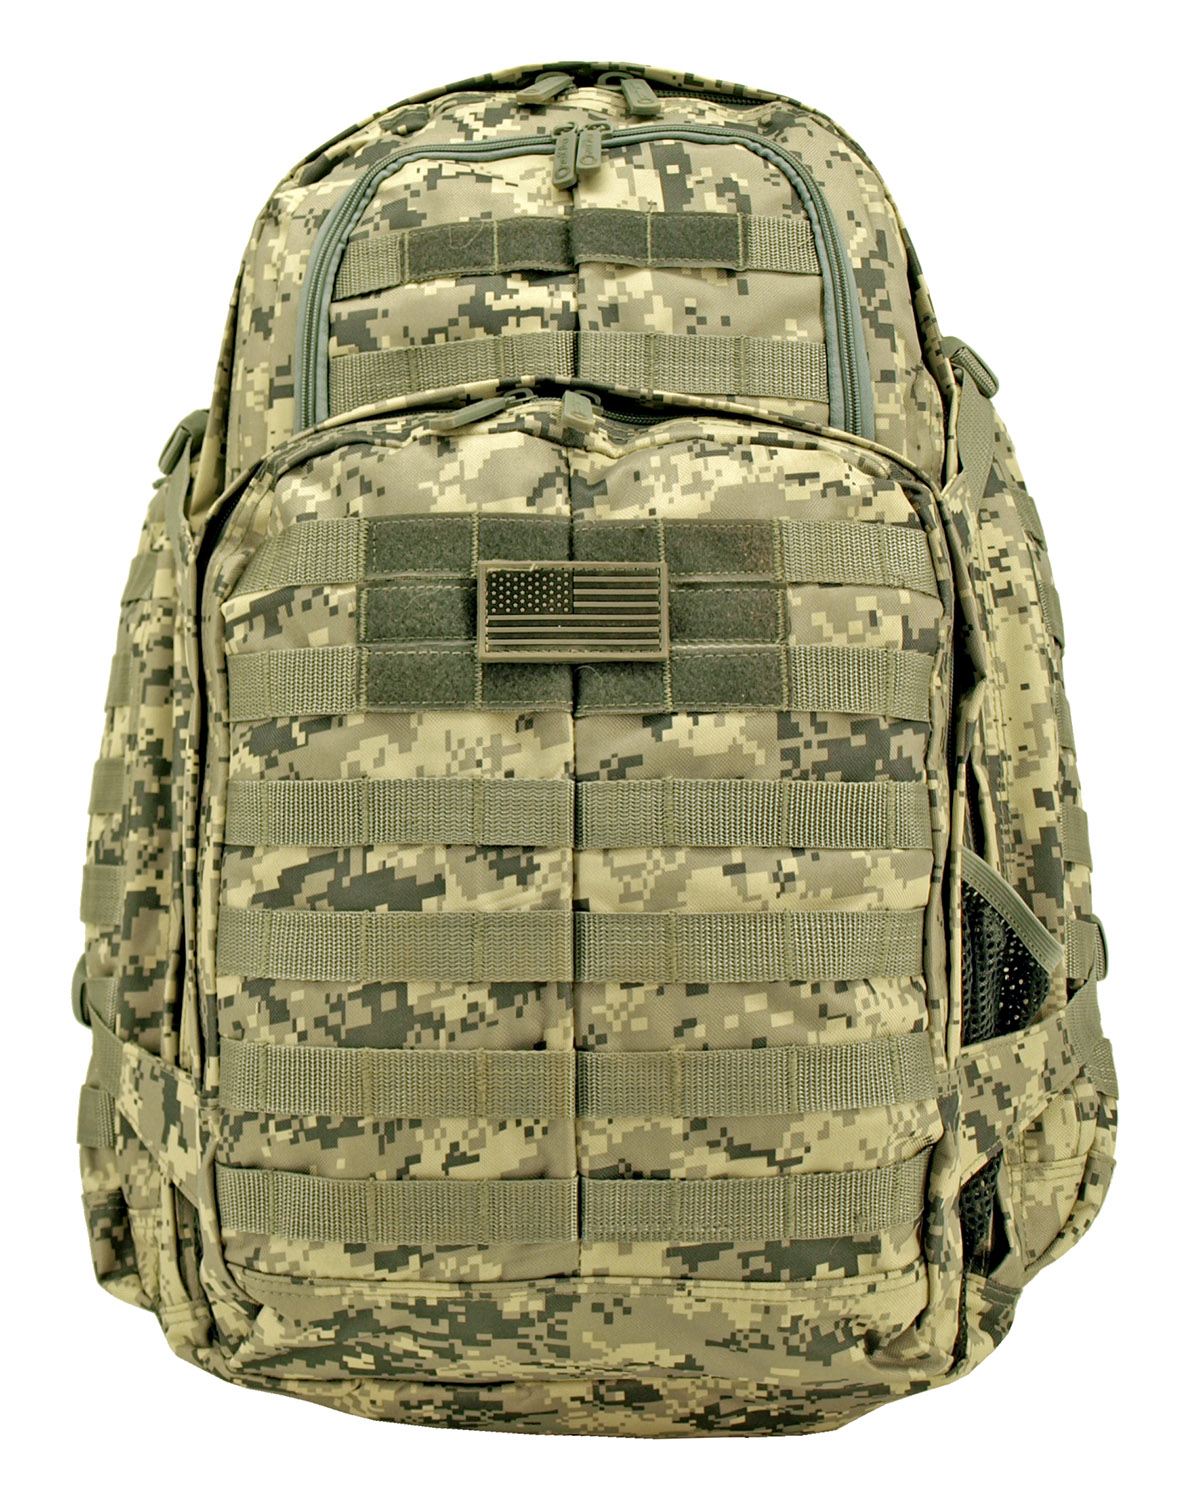 Expandable '73 Backpack - Digital Camo